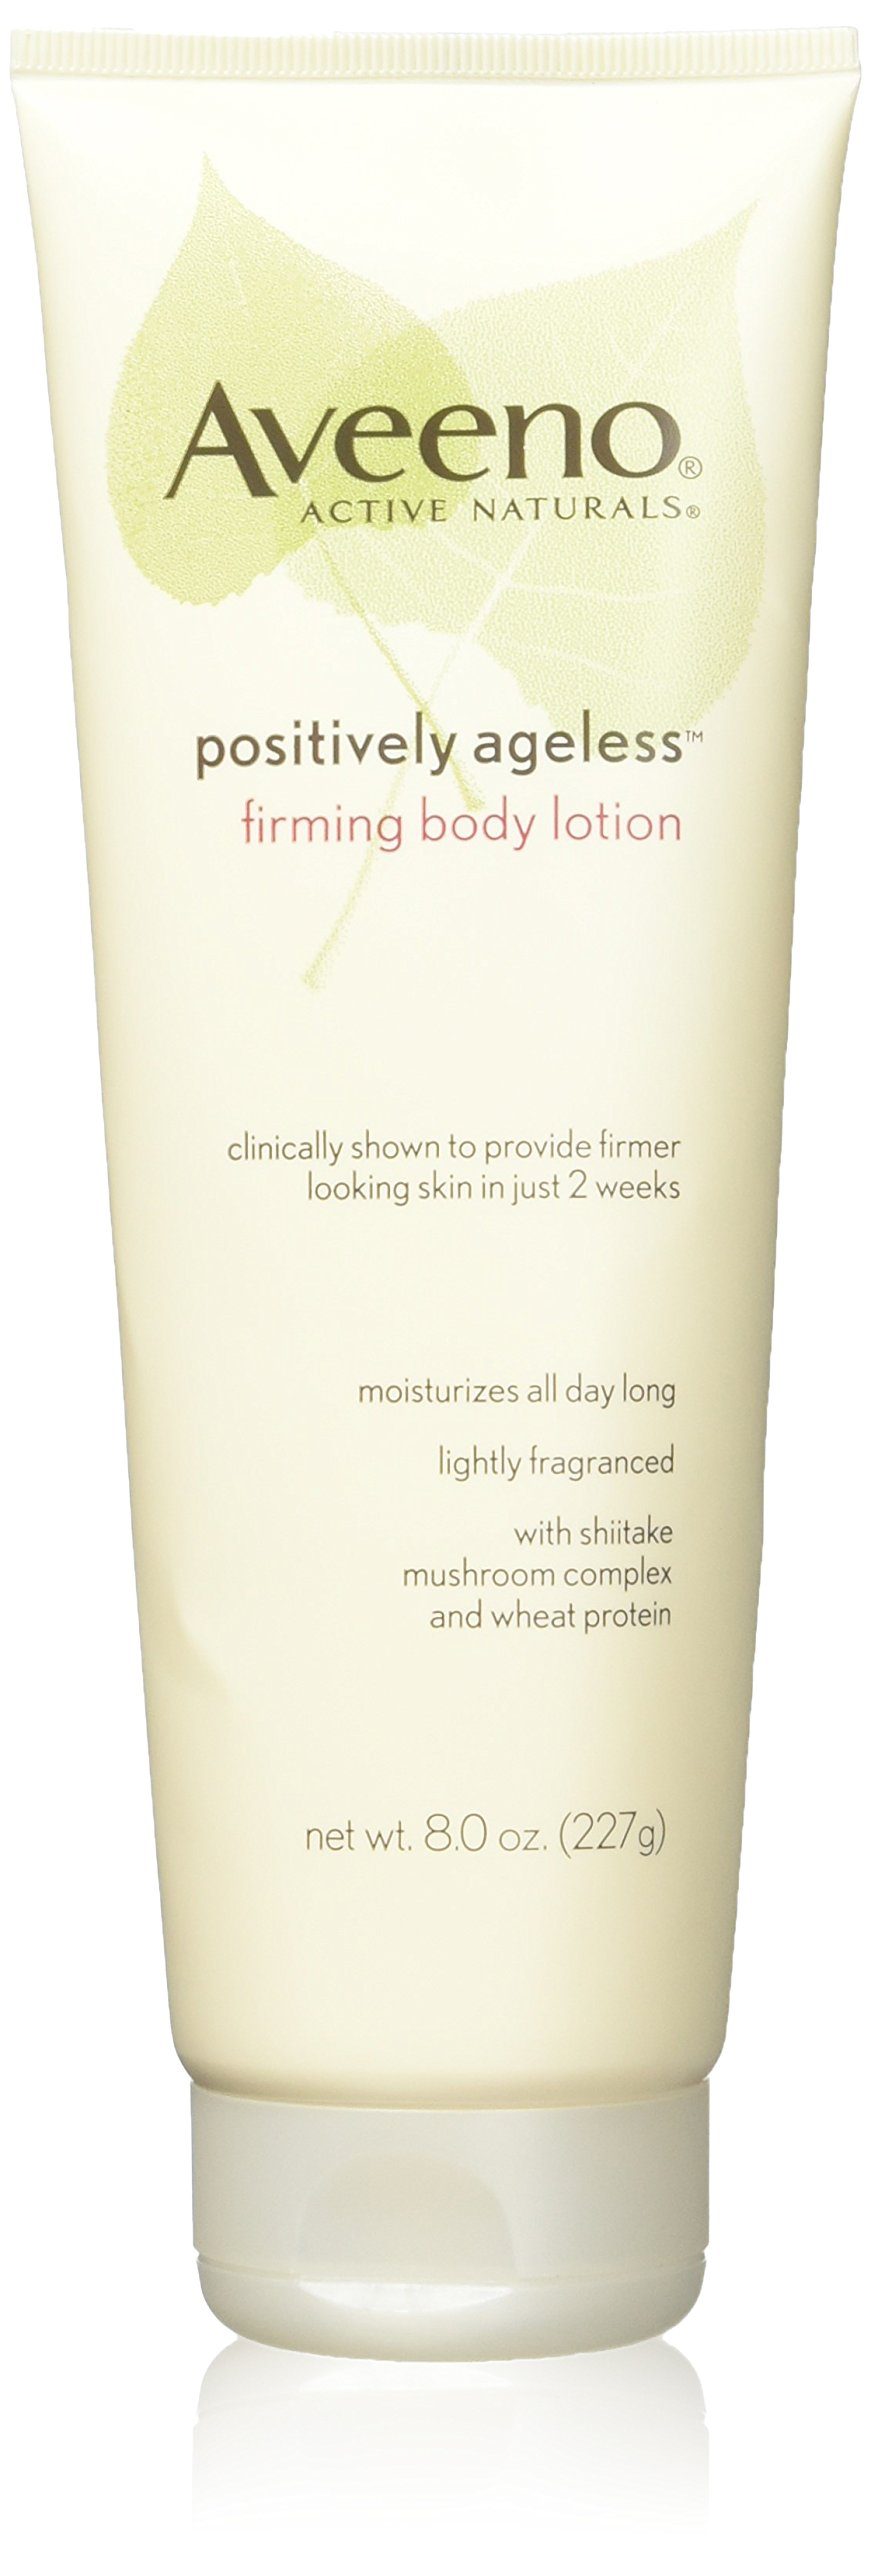 Aveeno Active Naturals Positively Ageless